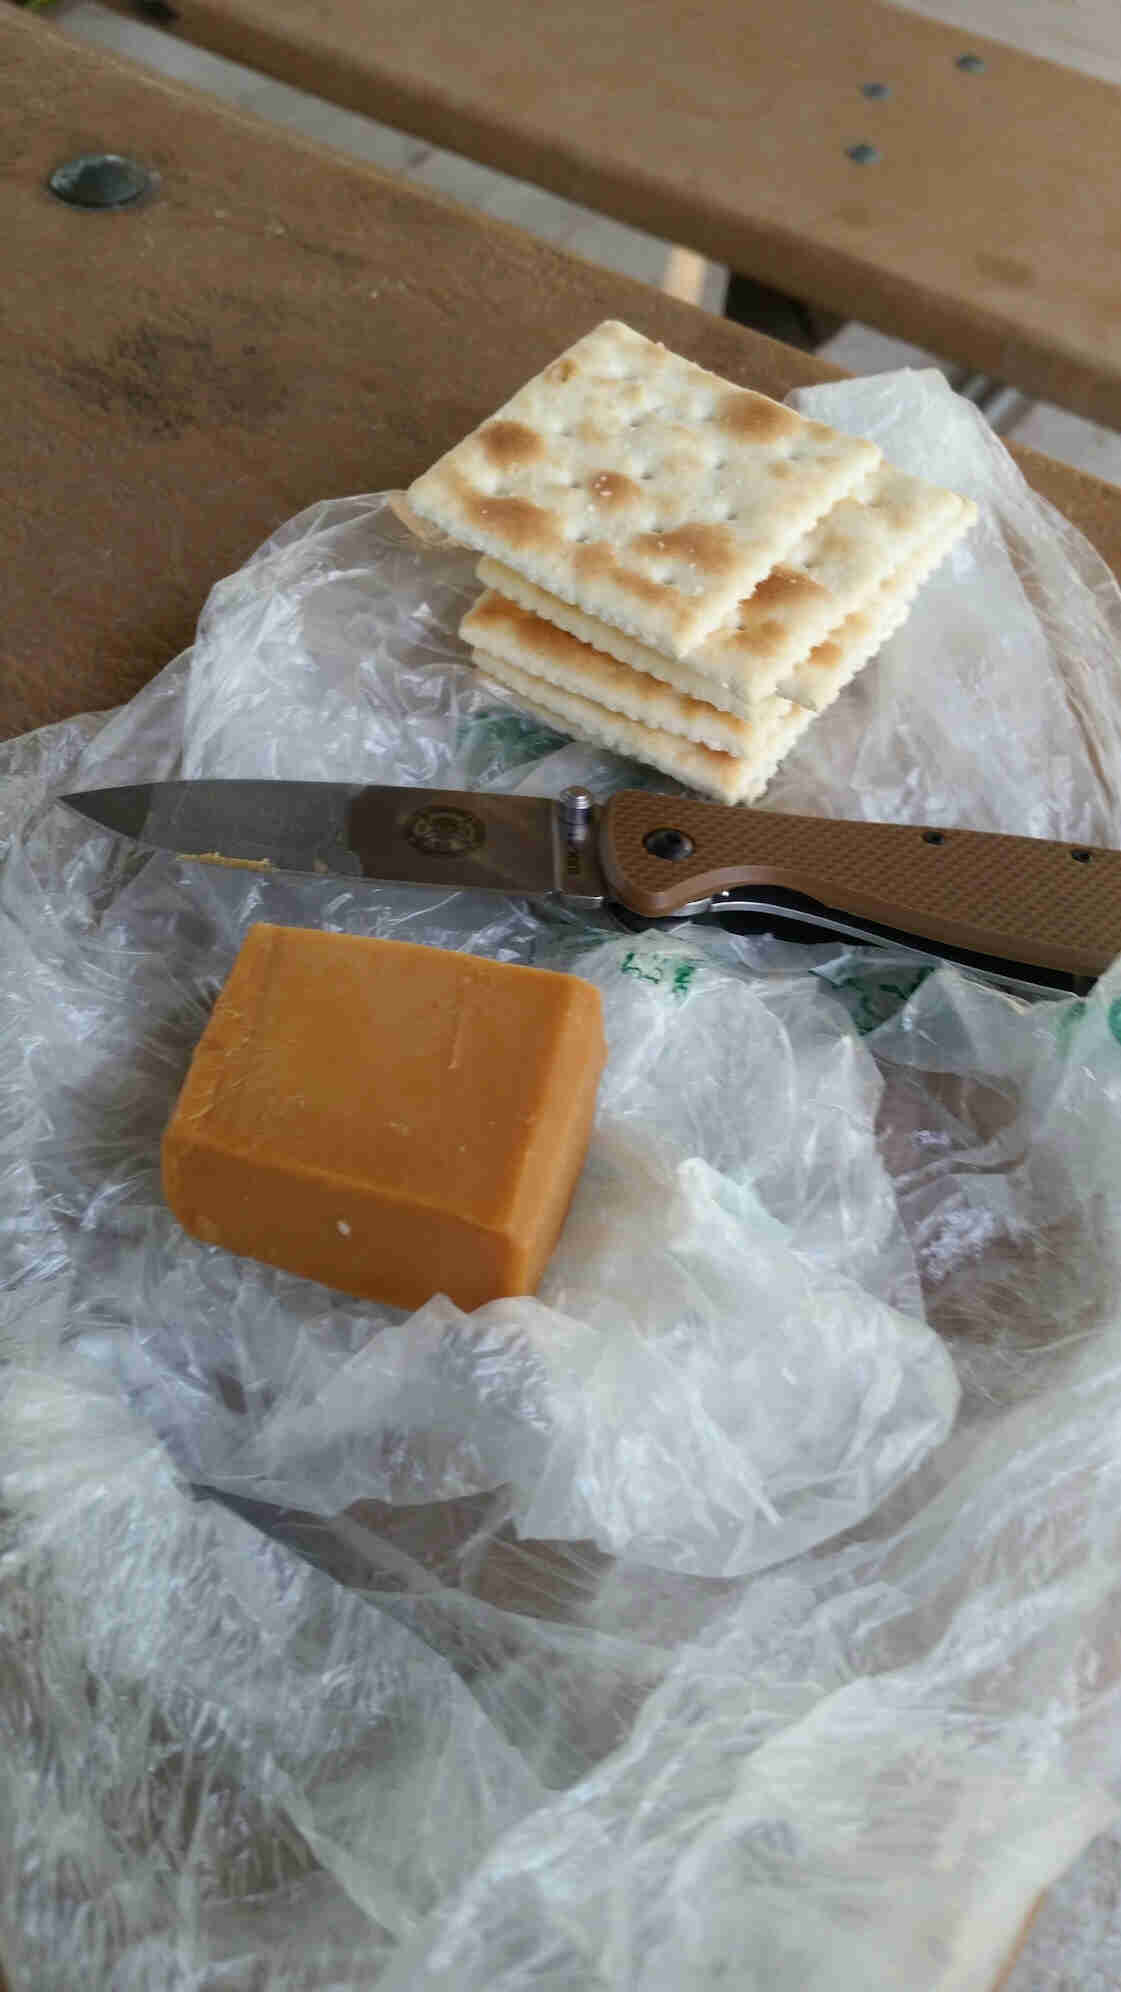 Downward view of crackers, a knife and block of cheese, on top of a clear plastic bag